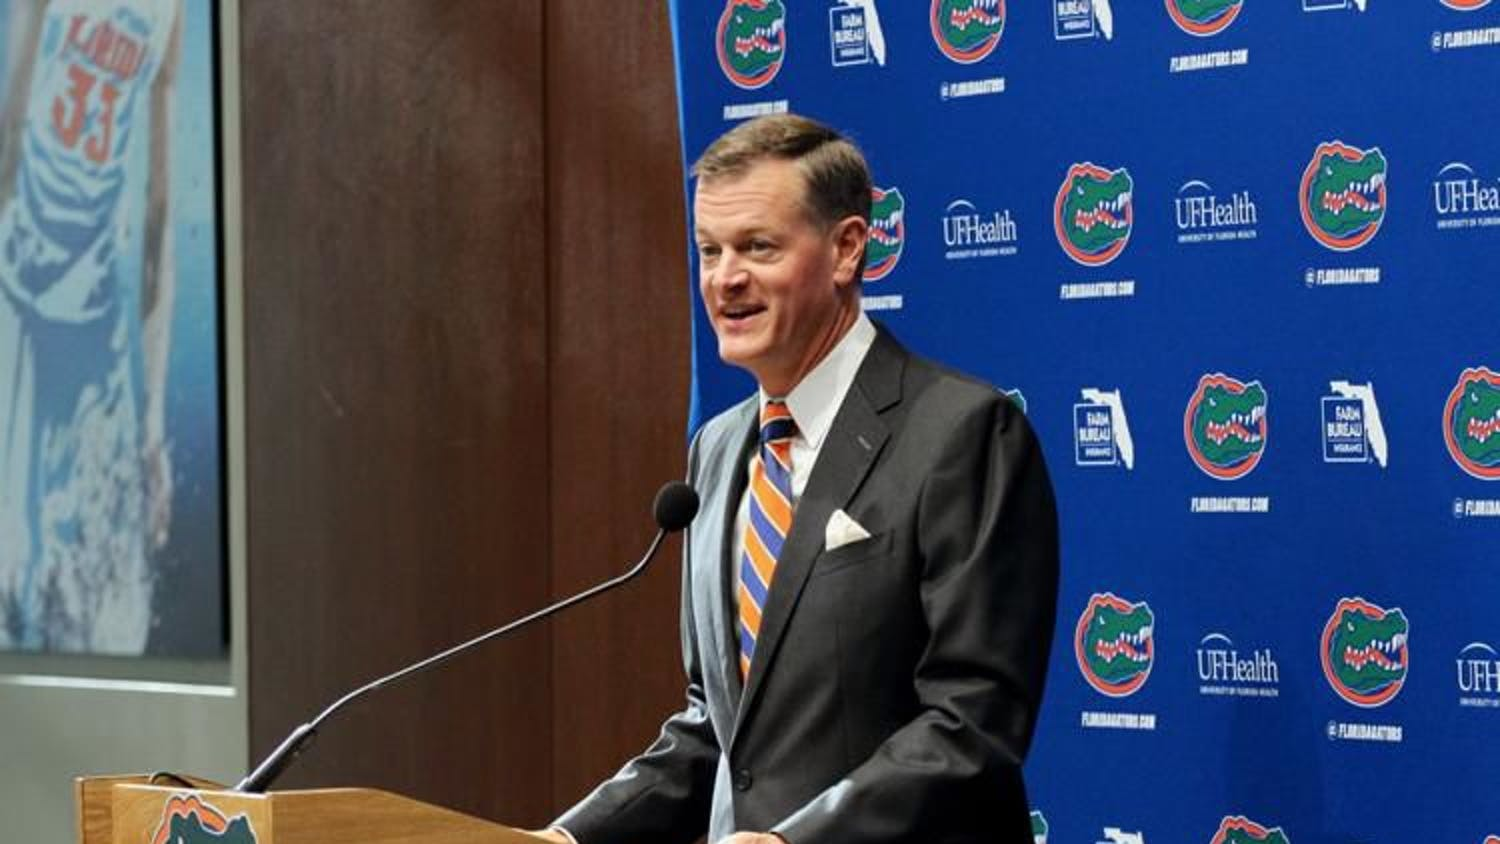 Athletic director Scott Stricklin has made a point to create a more challenging out-of-conference schedule for Florida football